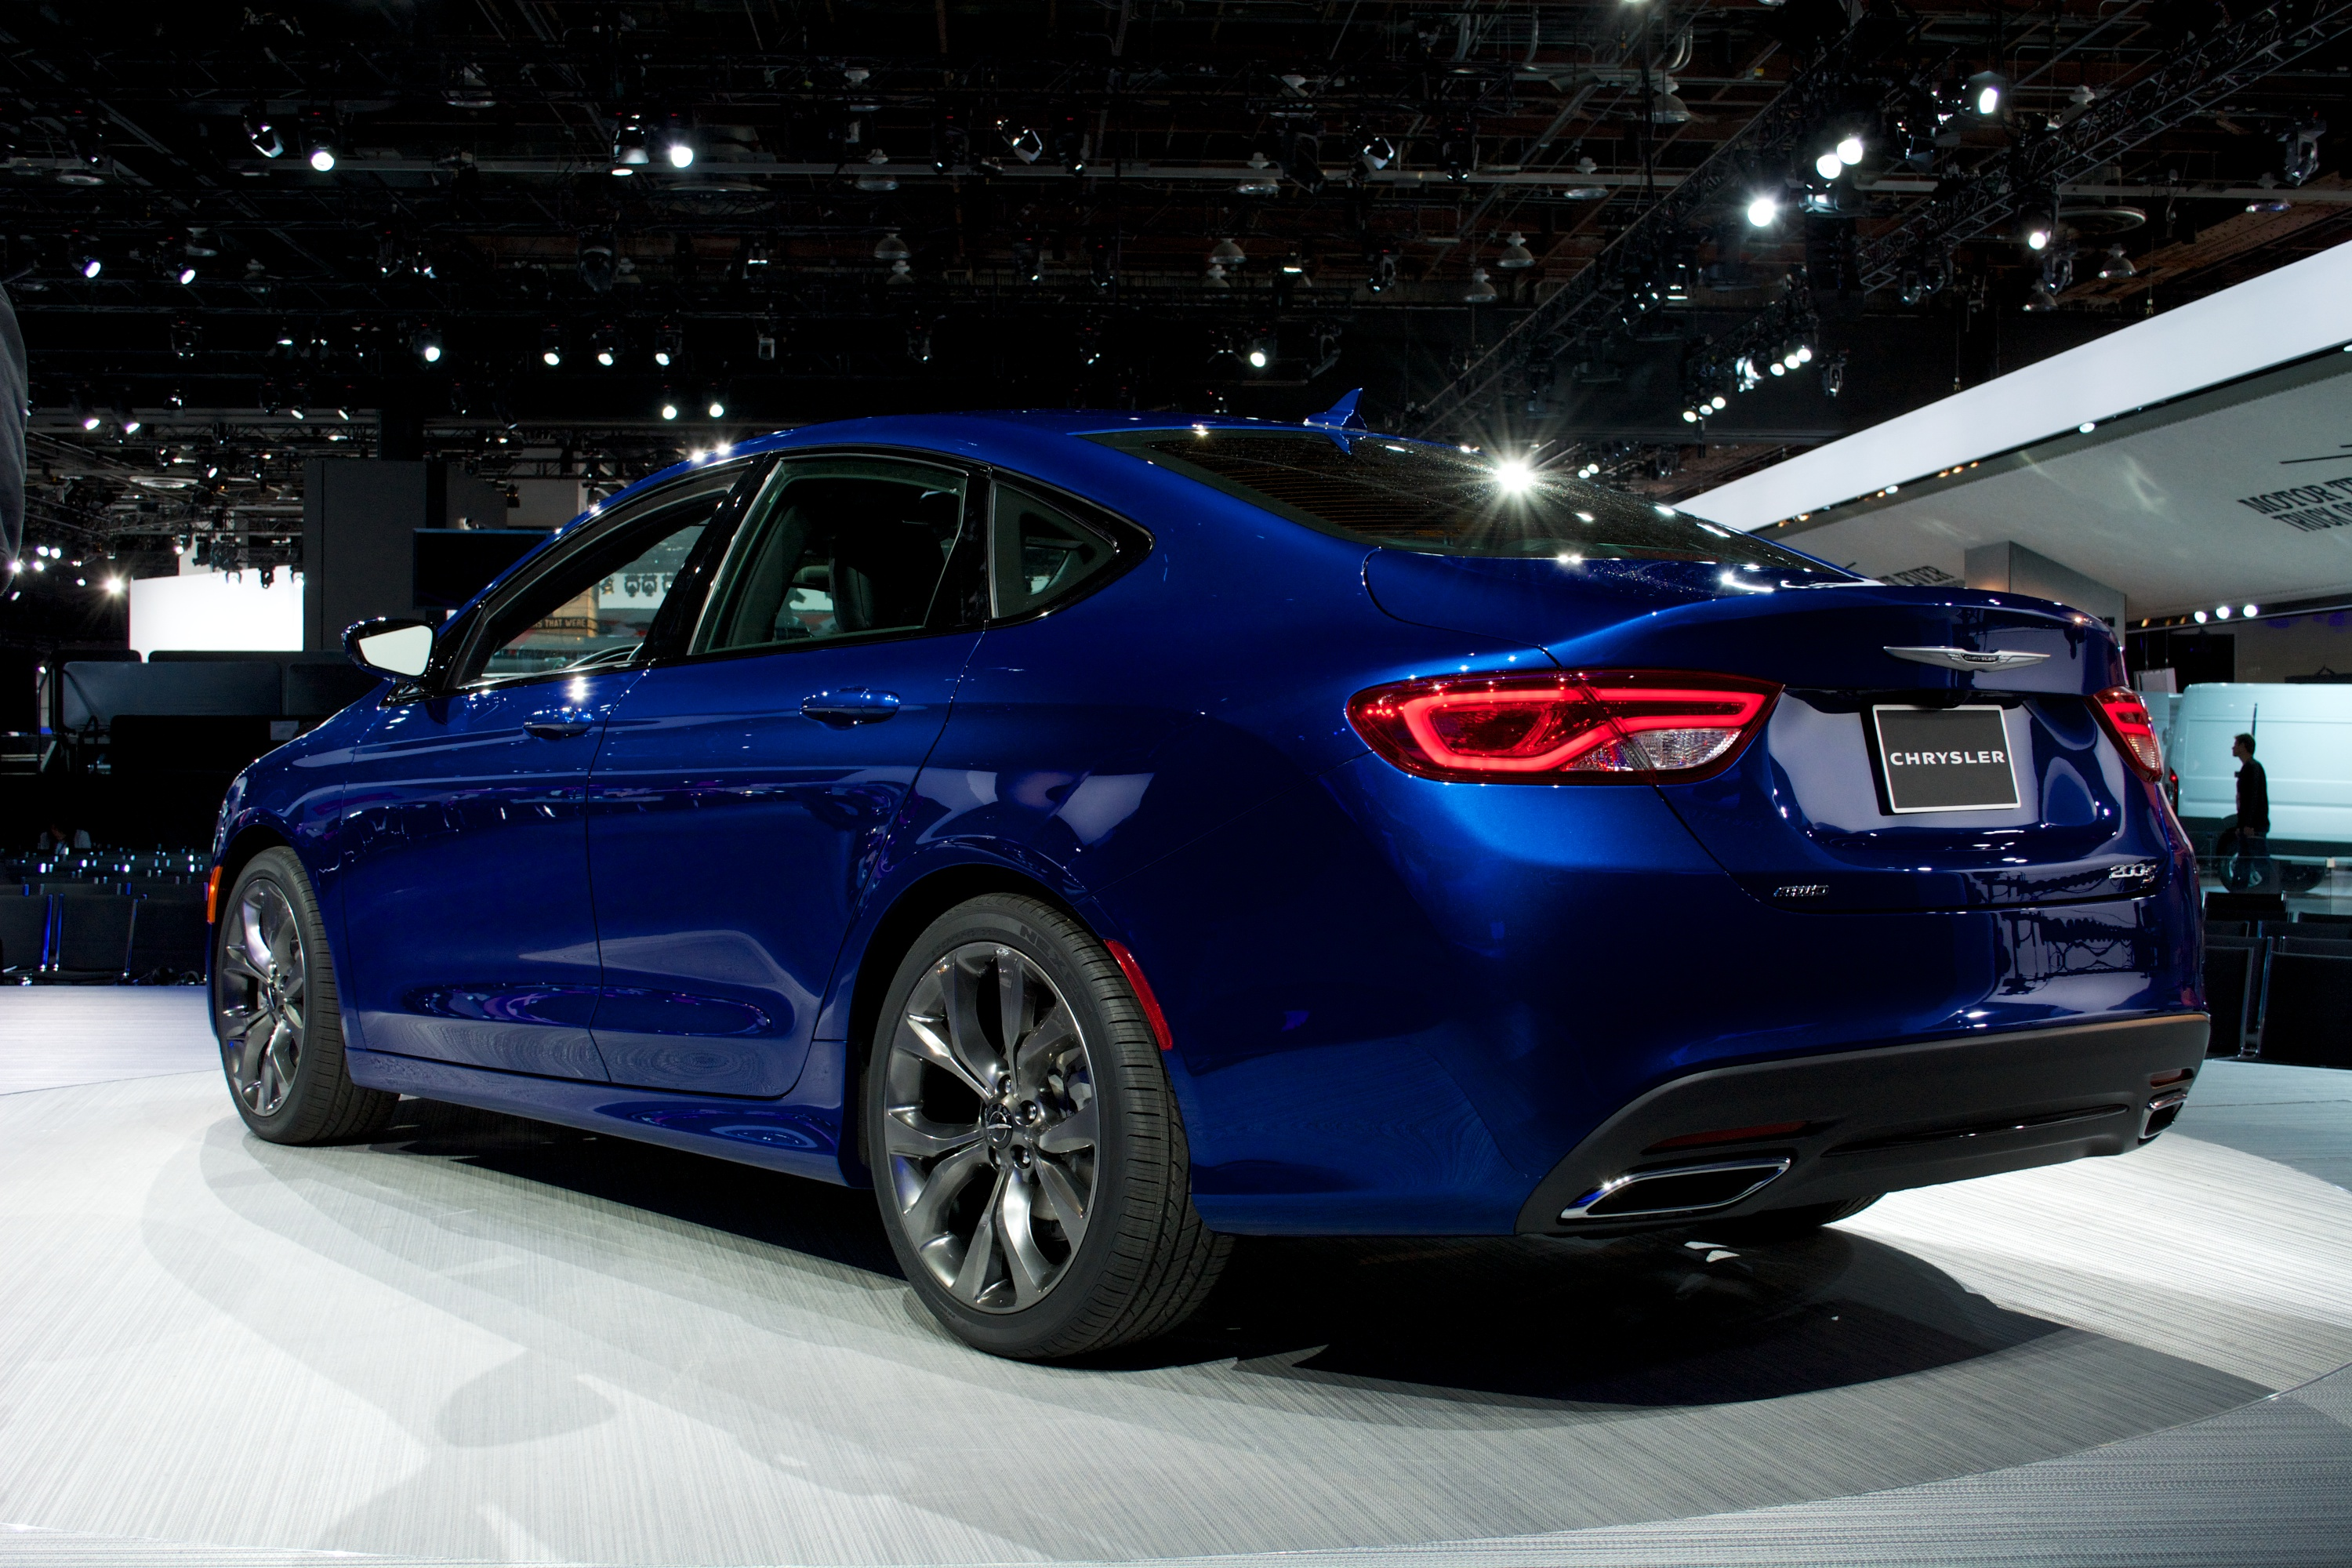 2015 chrysler 200 review release date price and specs. Black Bedroom Furniture Sets. Home Design Ideas